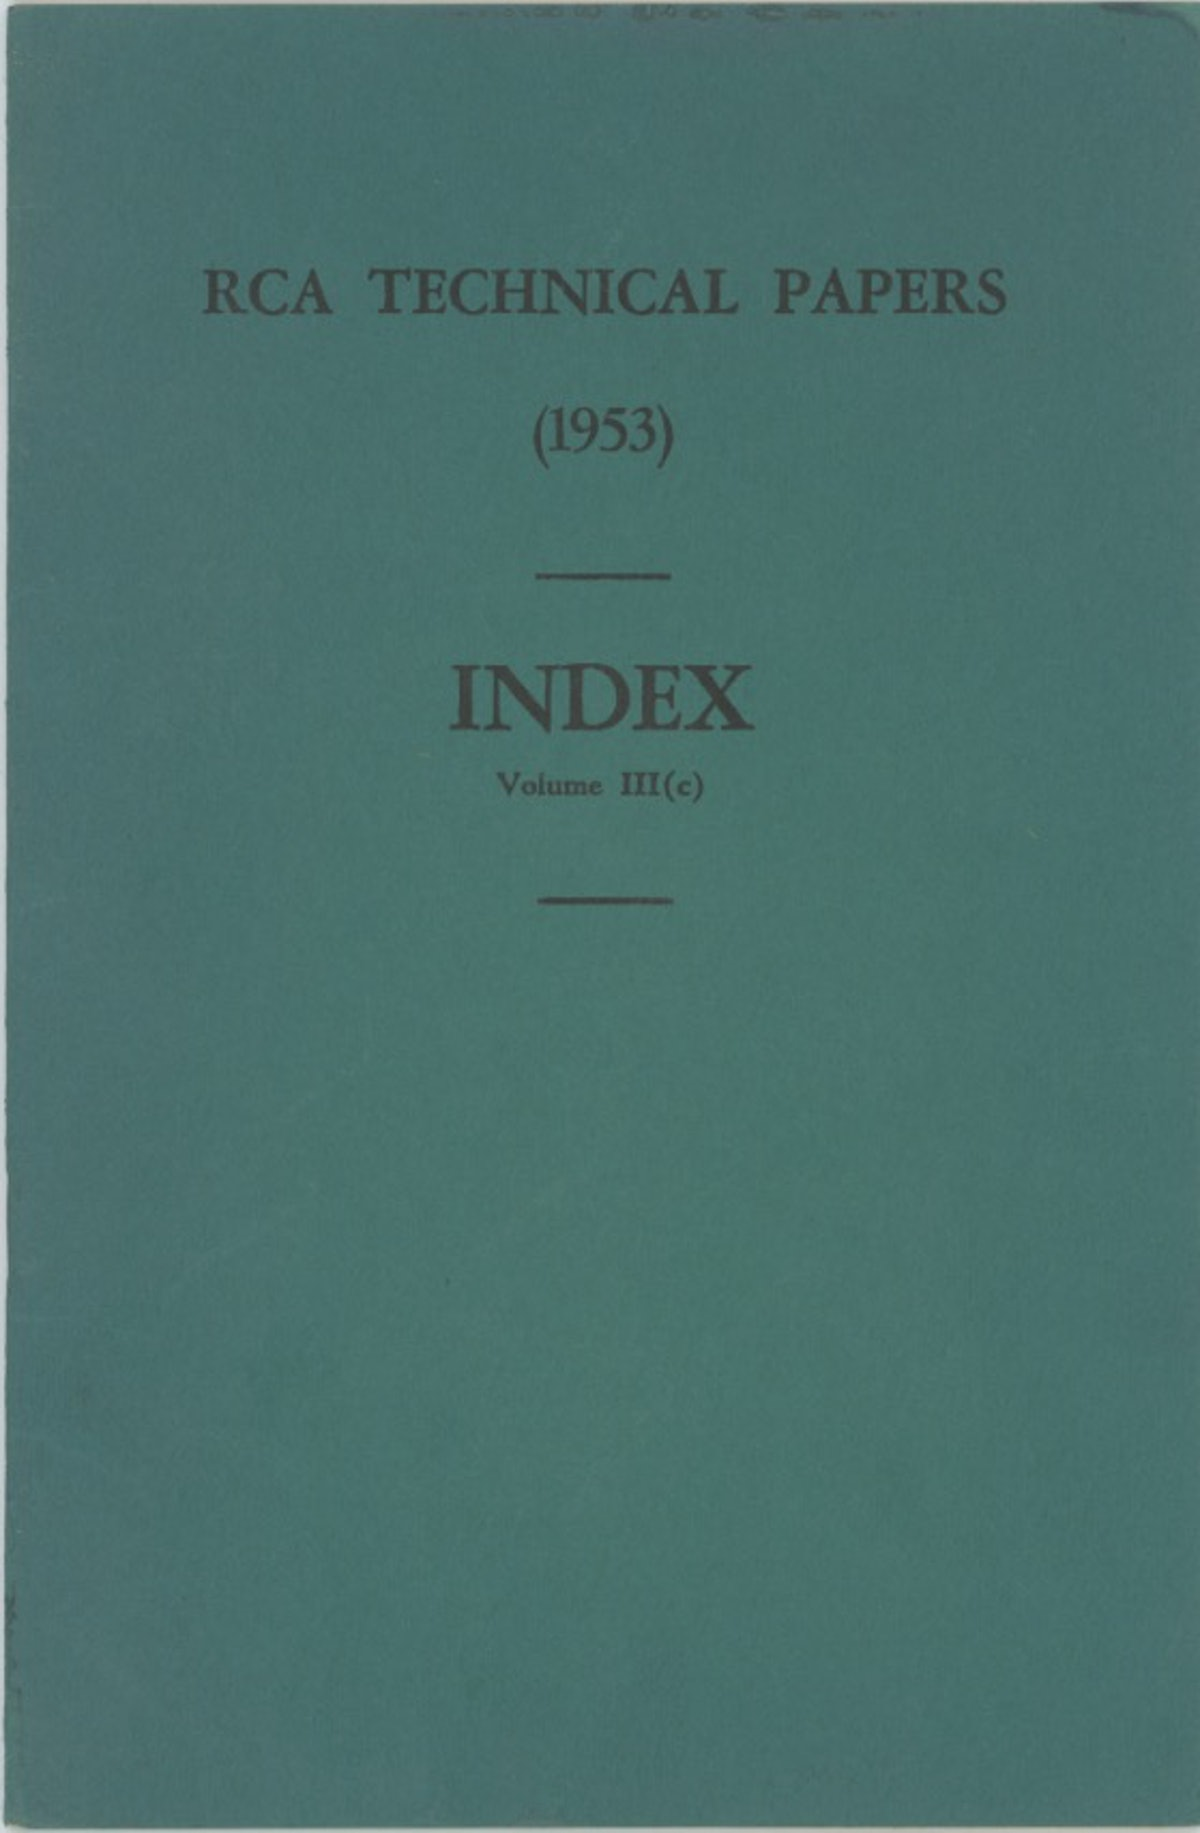 RCA Technical Papers Index Volume III (c)